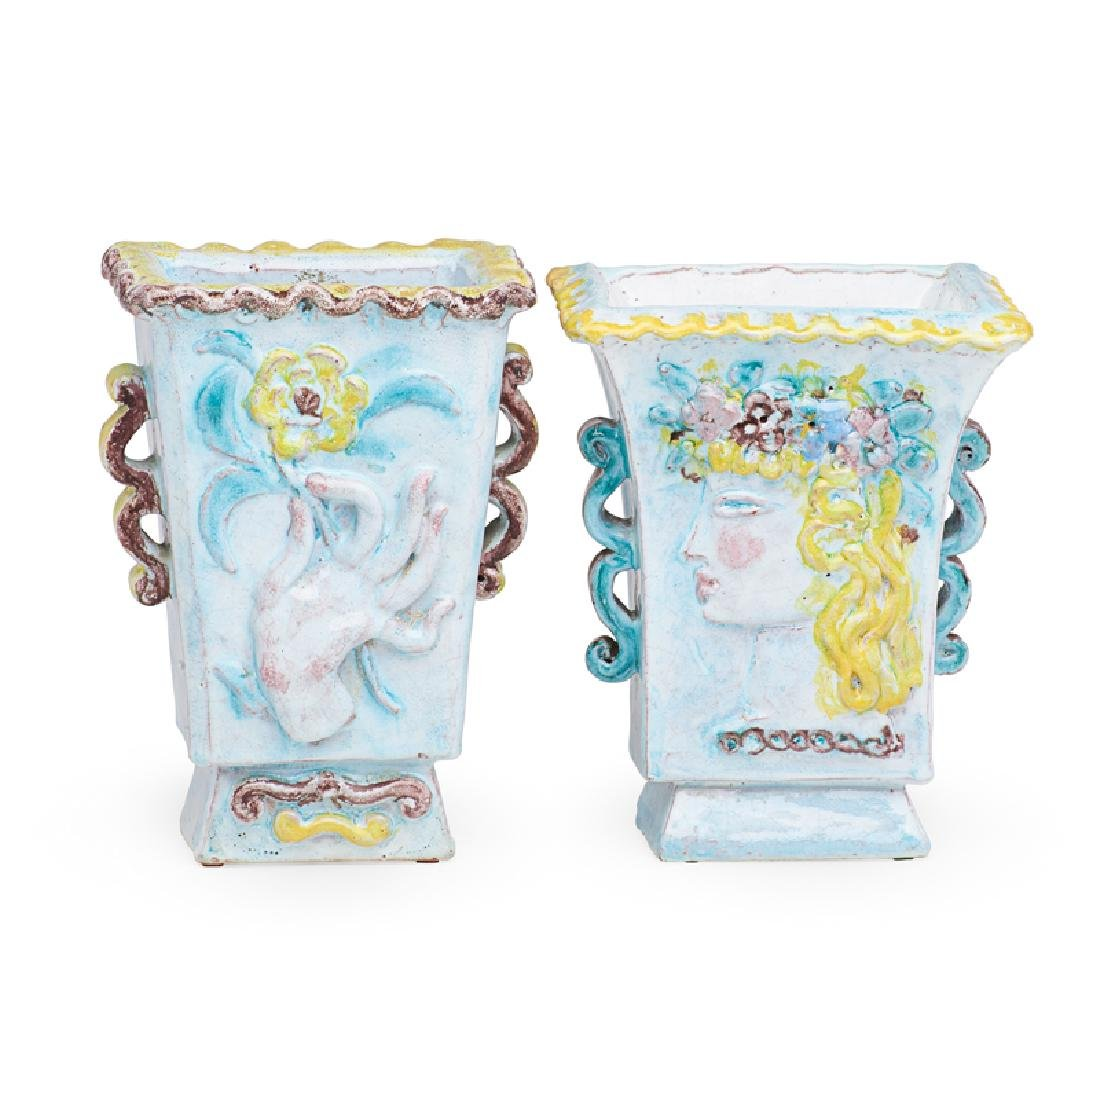 RENE BUTHAUD Two faience vases - 3